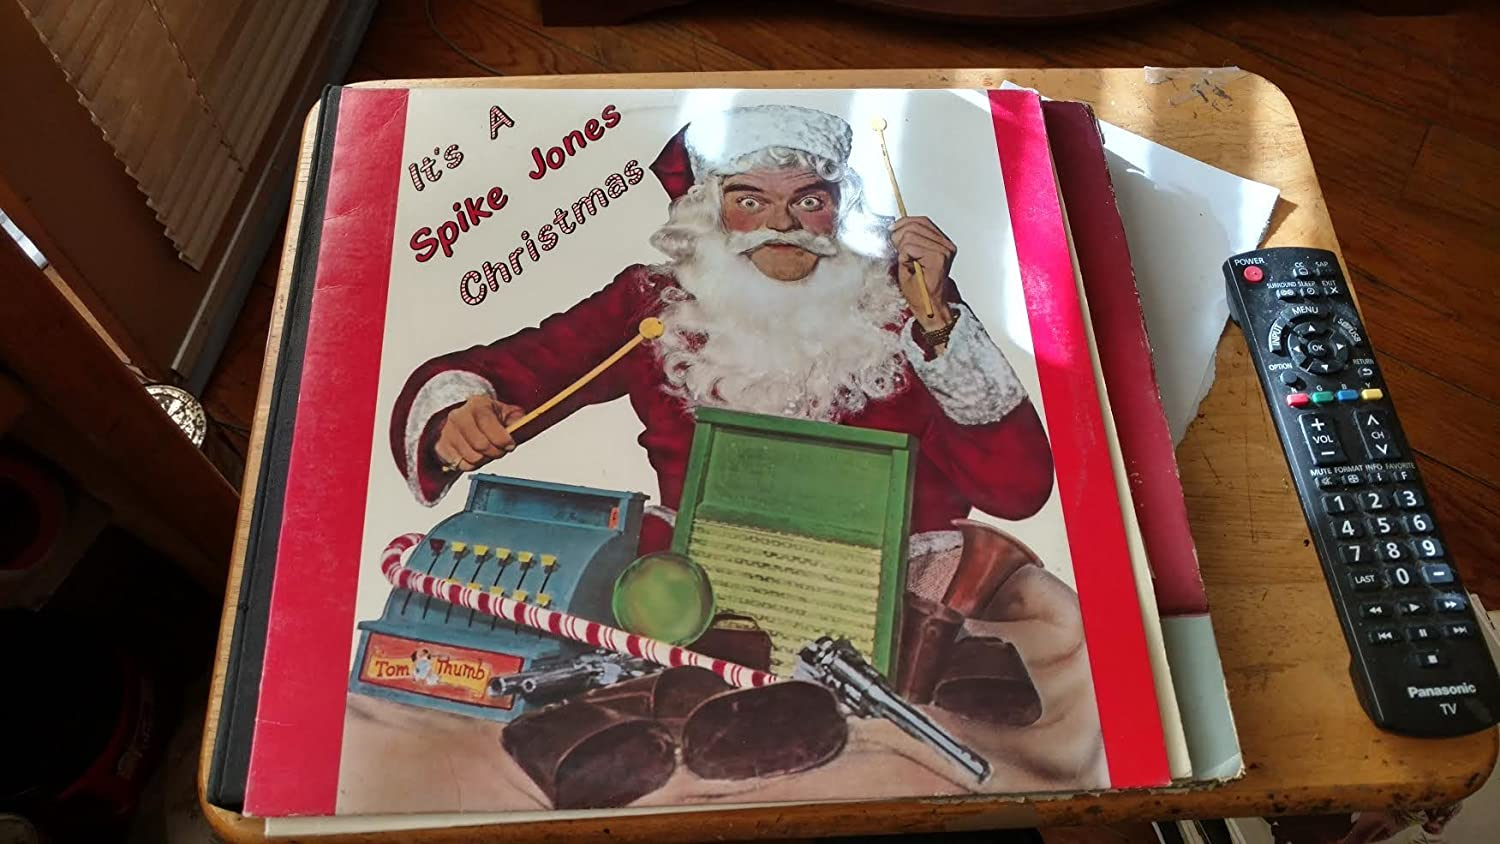 It's a Spike Max 67% OFF NEW Christmas Jones